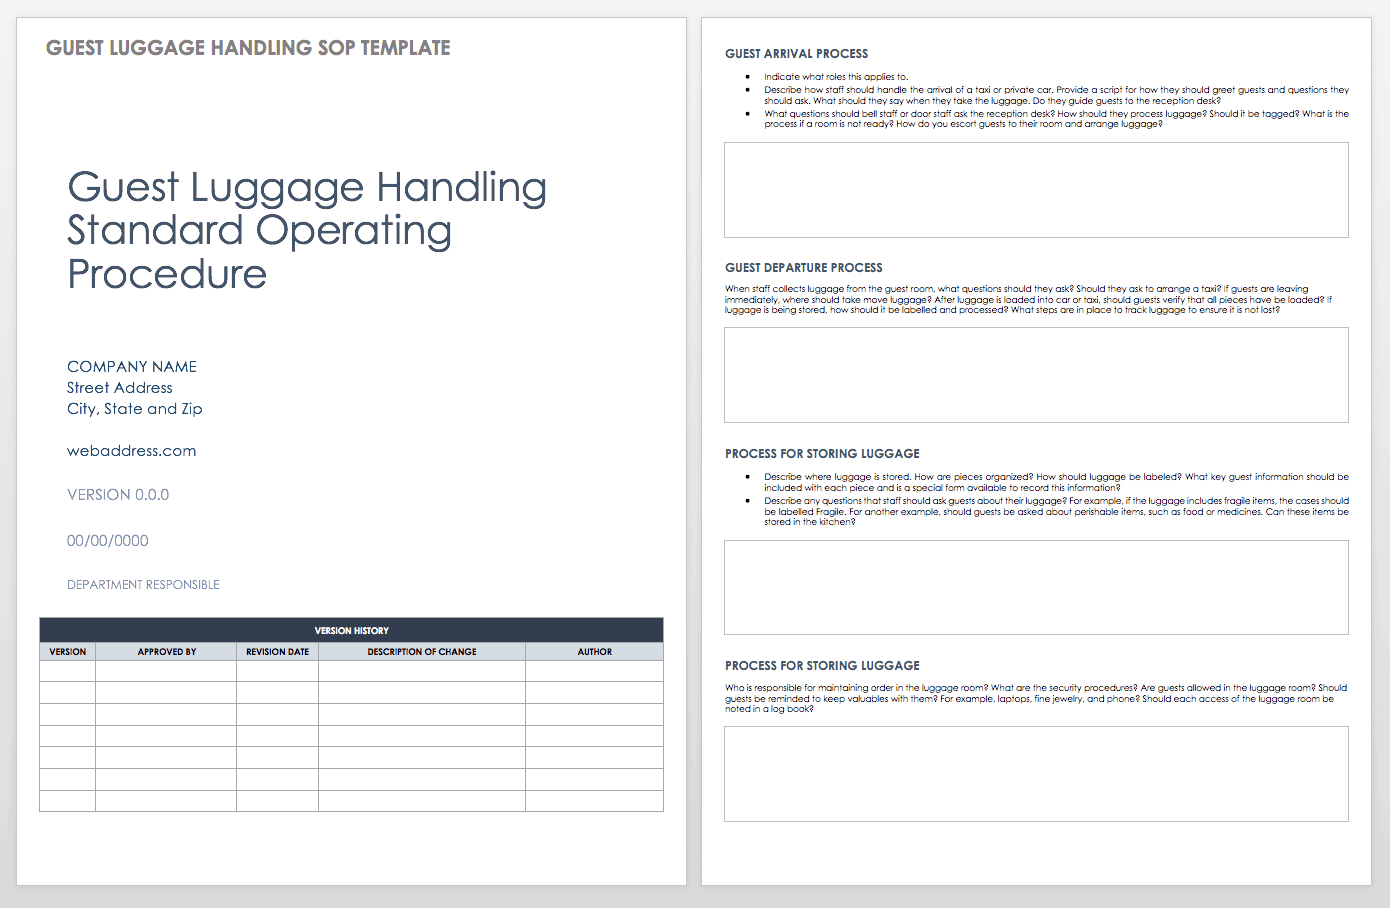 Guest Luggage Standard Operating Procedure Template Procedures